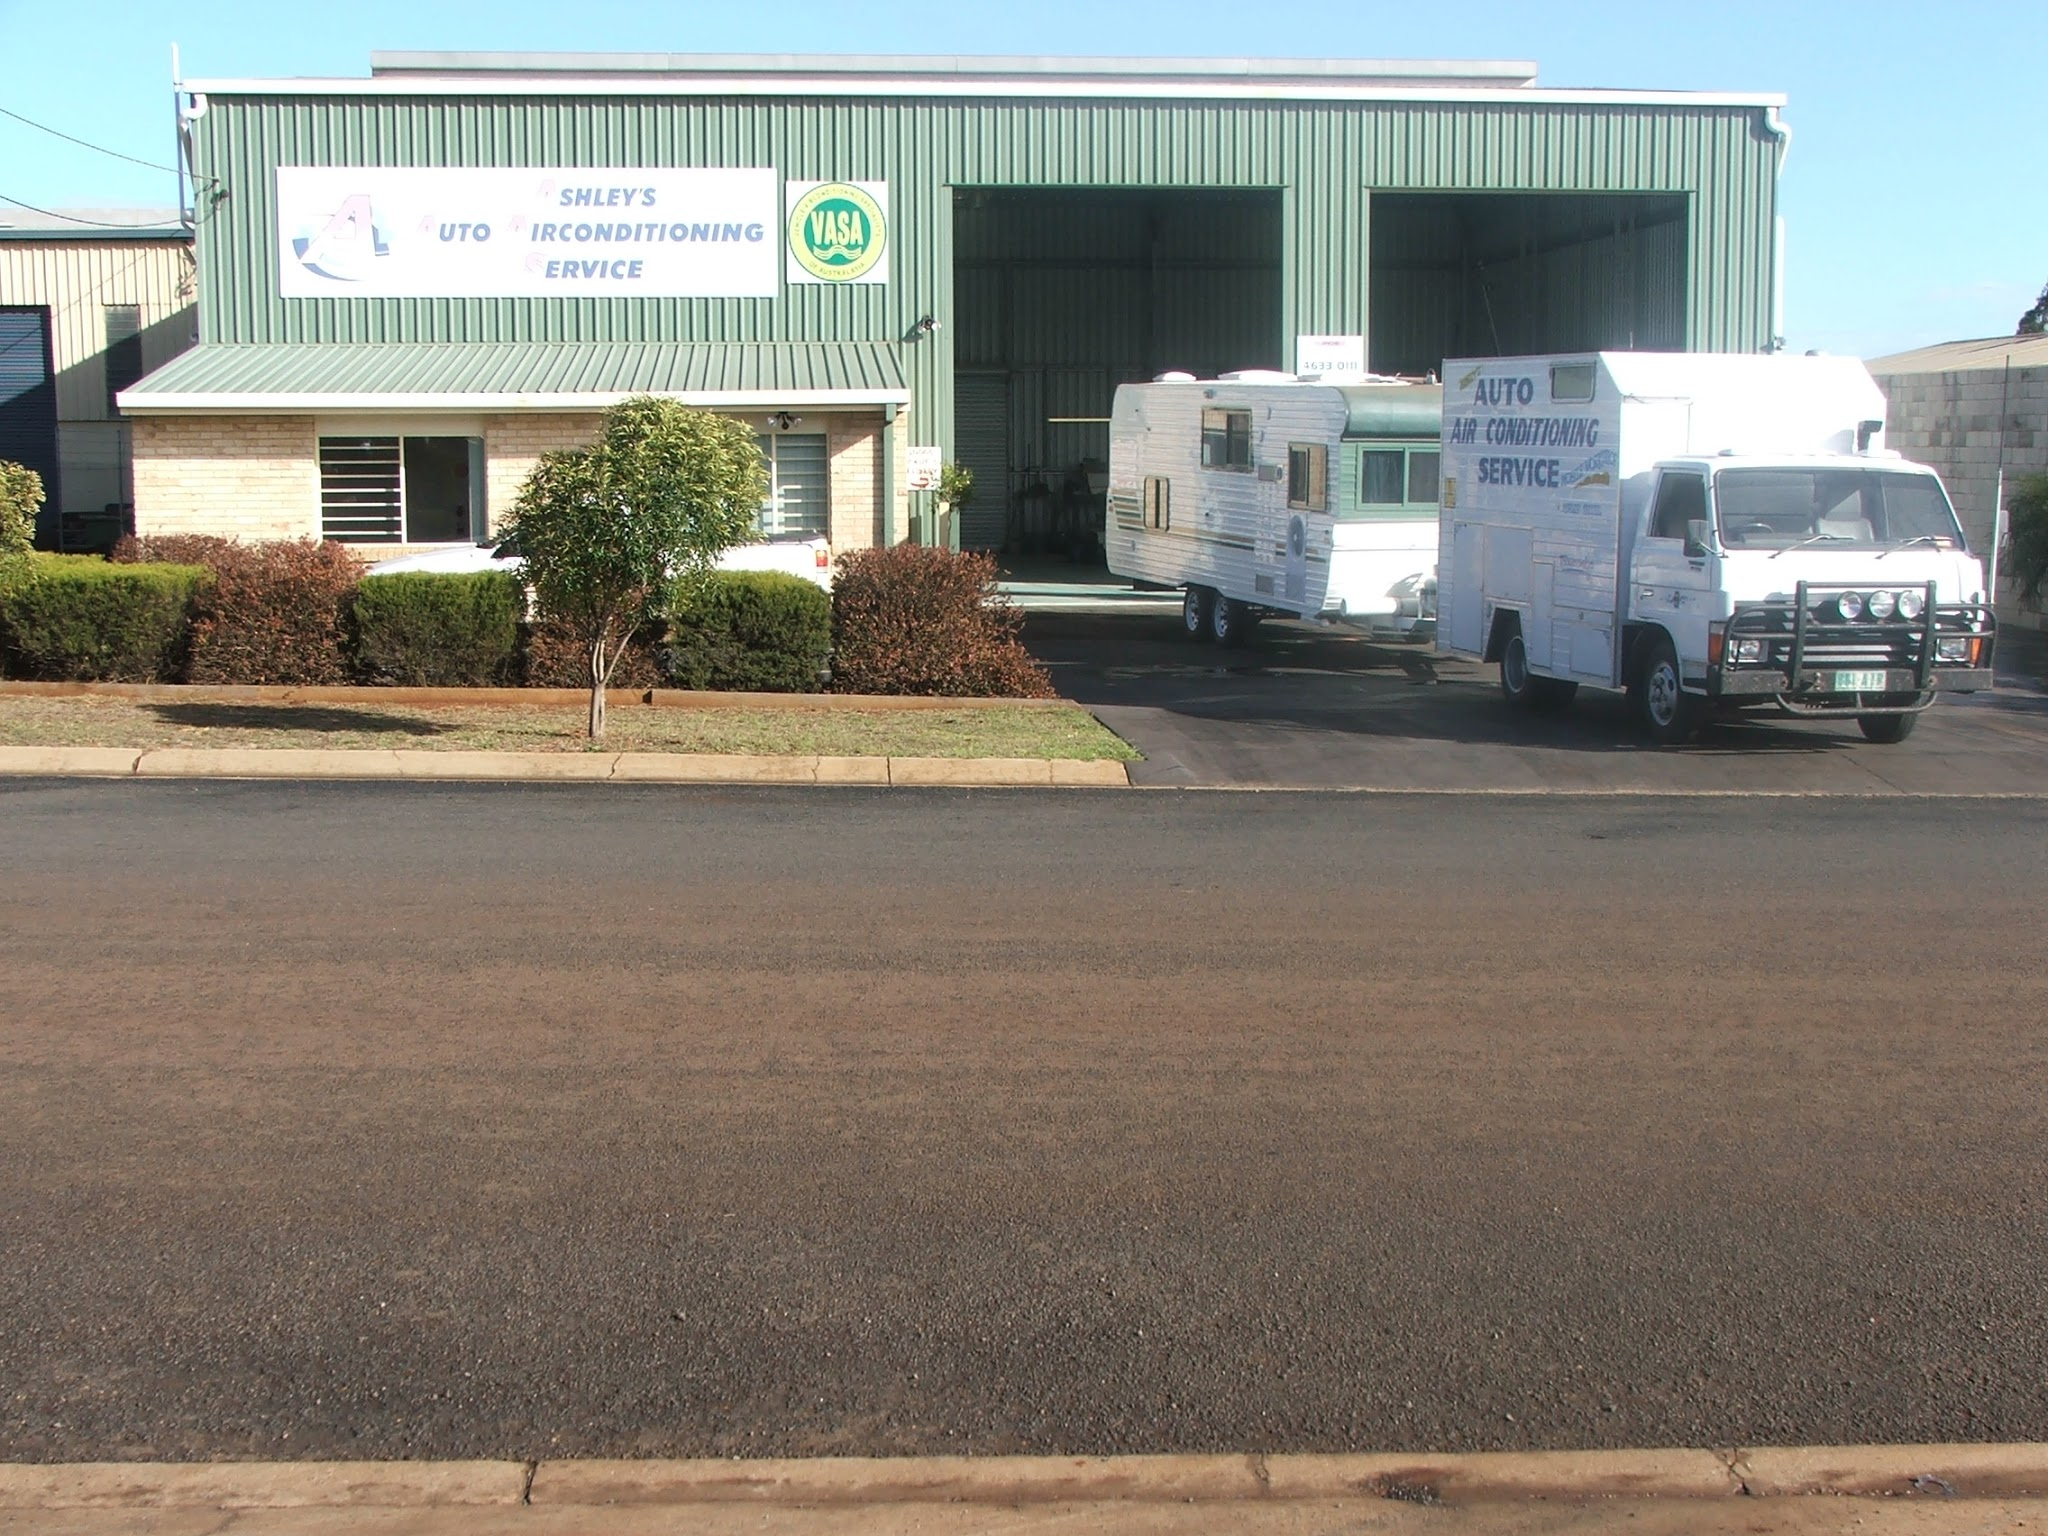 Ashley'S Auto AIR Conditioning Service | 13 Eyers Street, Toowoomba, Queensland 4350 | +61 7 4633 0111